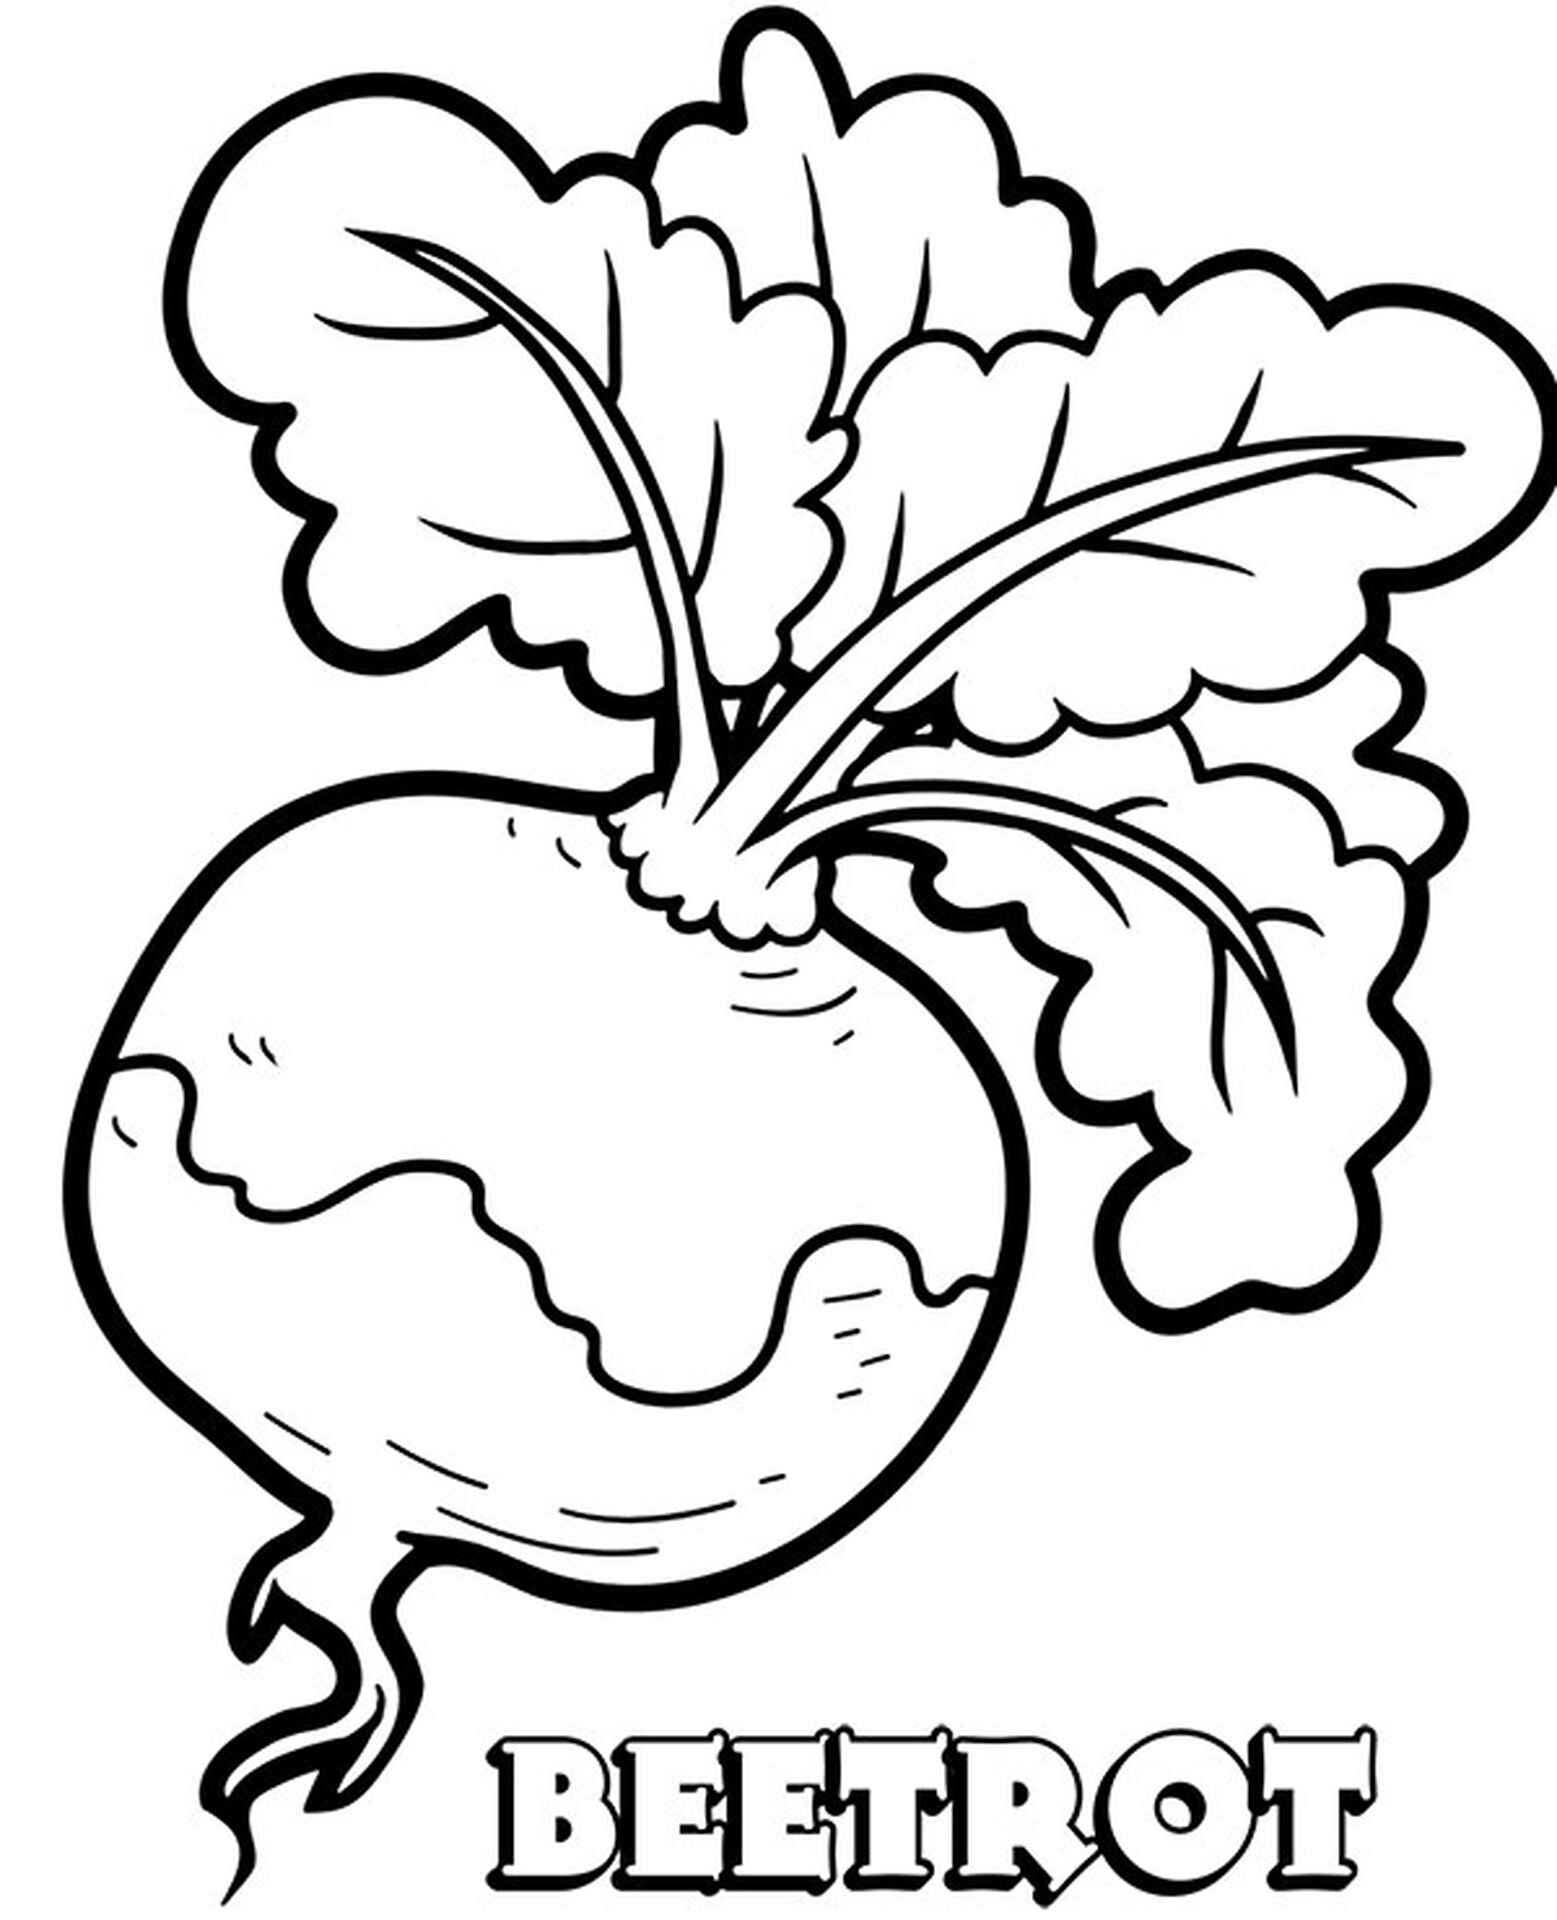 Beetrot Coloring Pages